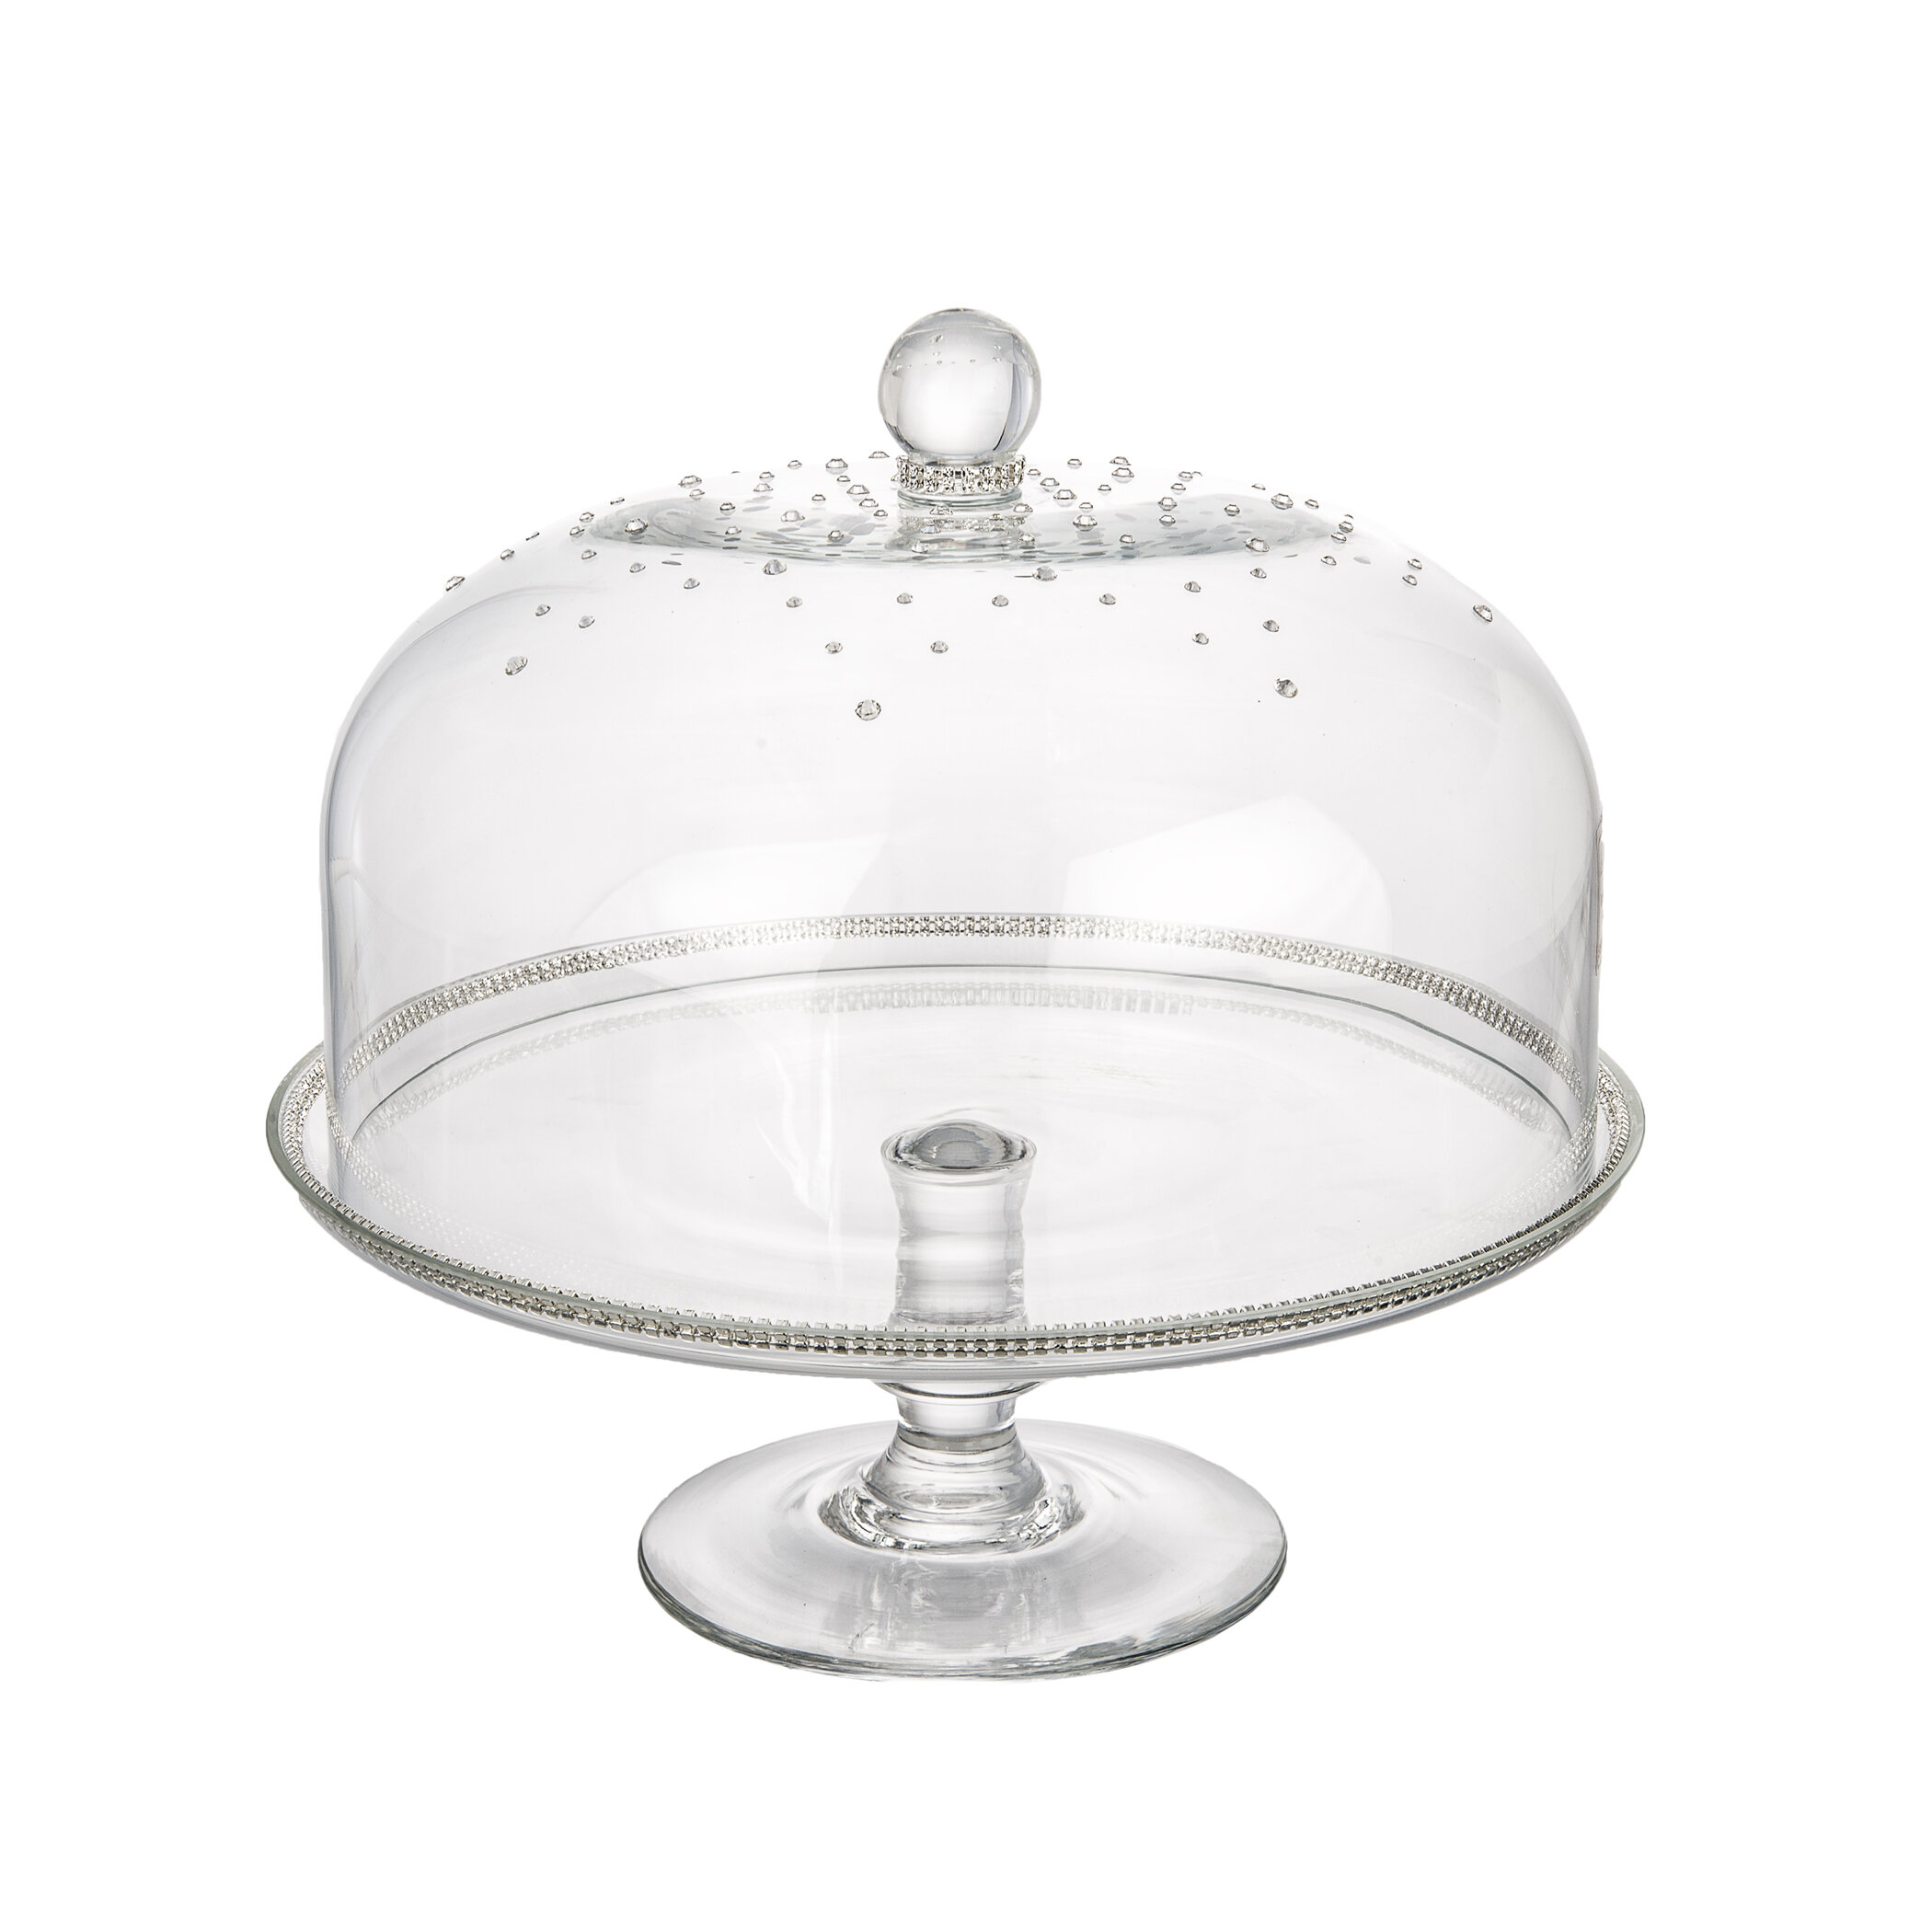 plate s domes dome pink cake stands plates decorative with pedestal stand cover white hot glass